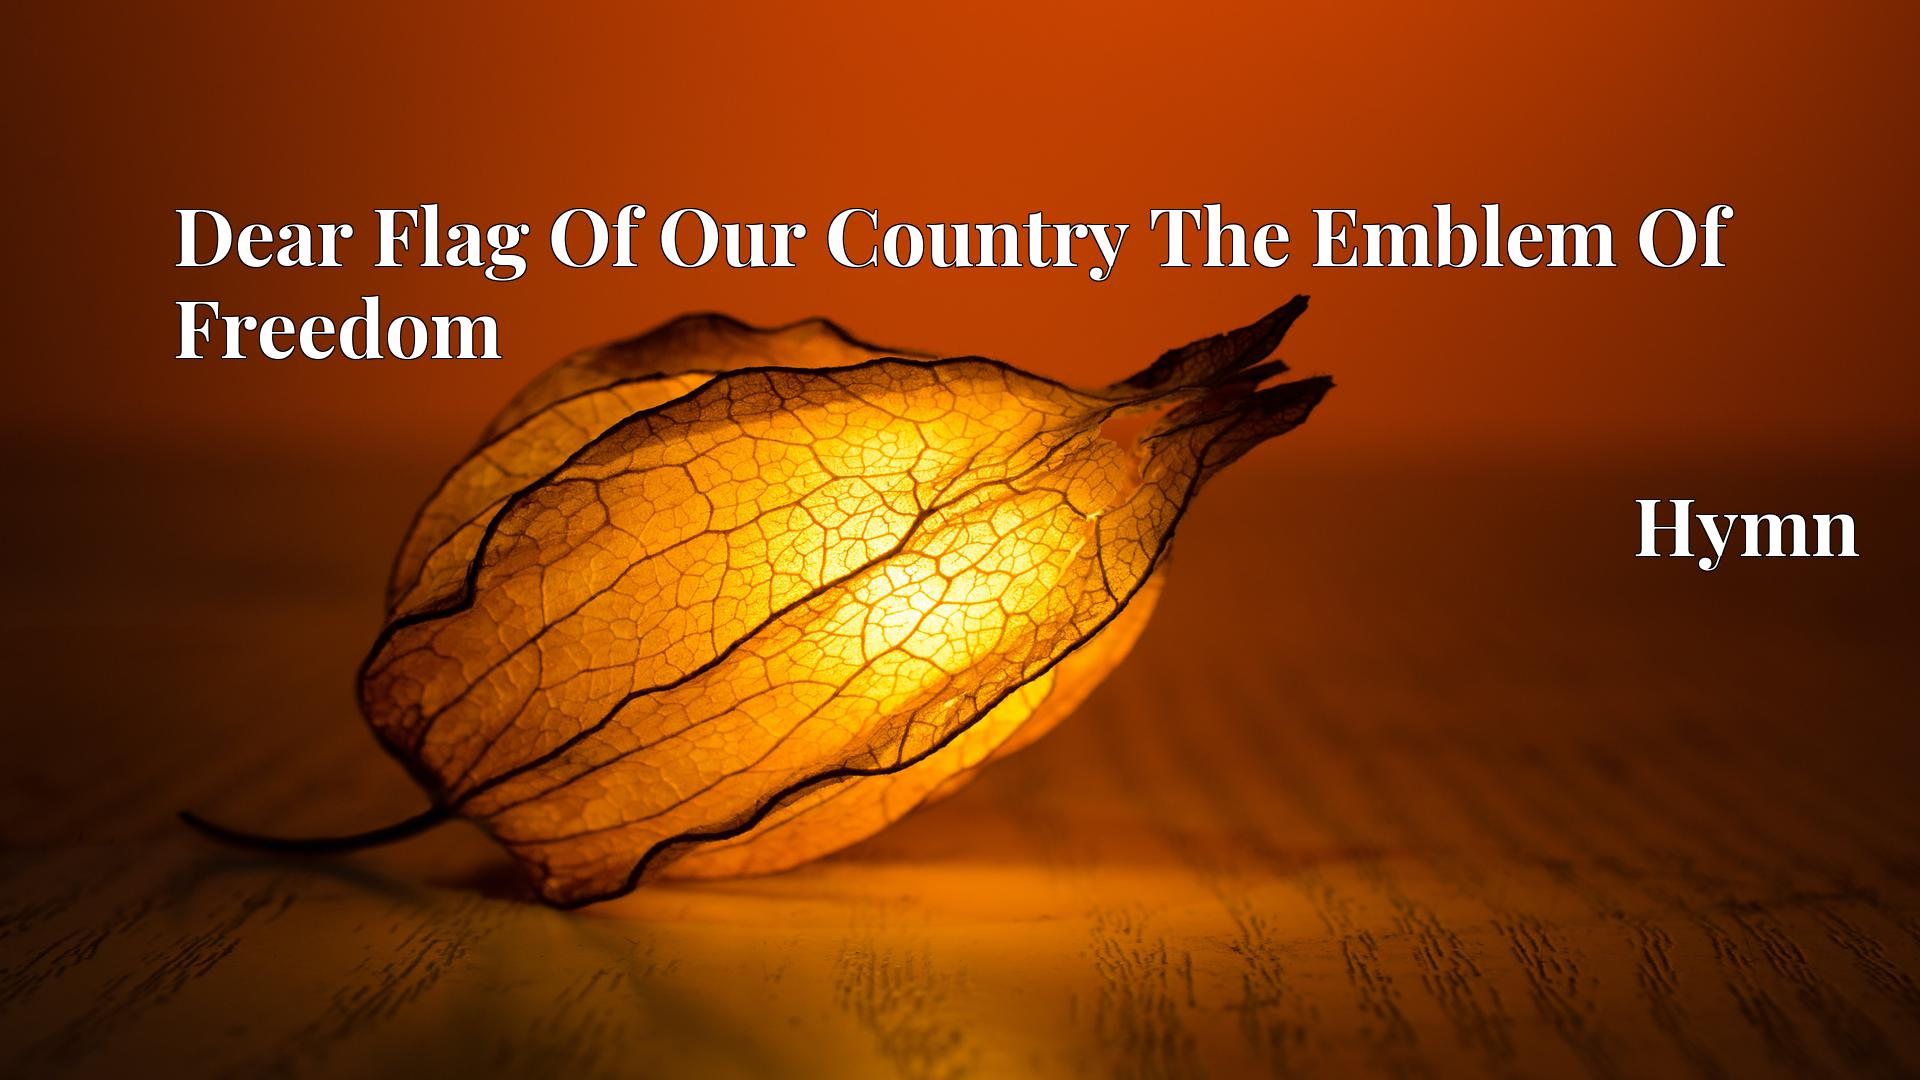 Dear Flag Of Our Country The Emblem Of Freedom - Hymn